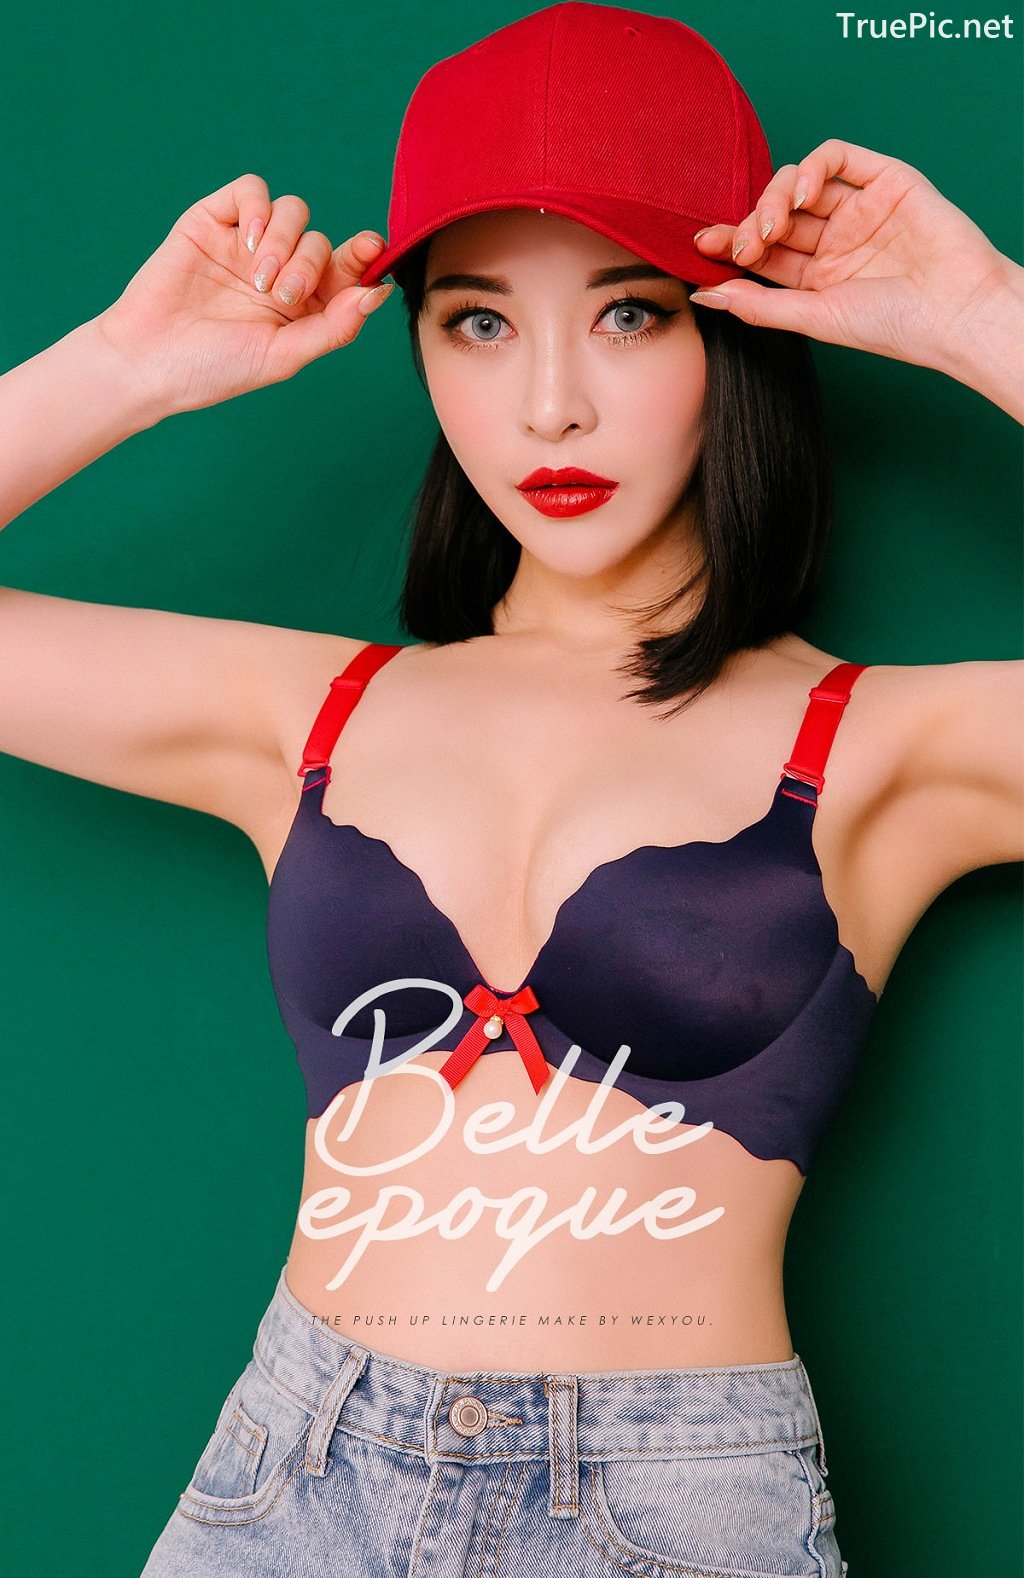 Image-Korean-Fashion-Model-Ryu-Hyeonju-We-x-You-Lingerie-Set-TruePic.net- Picture-2